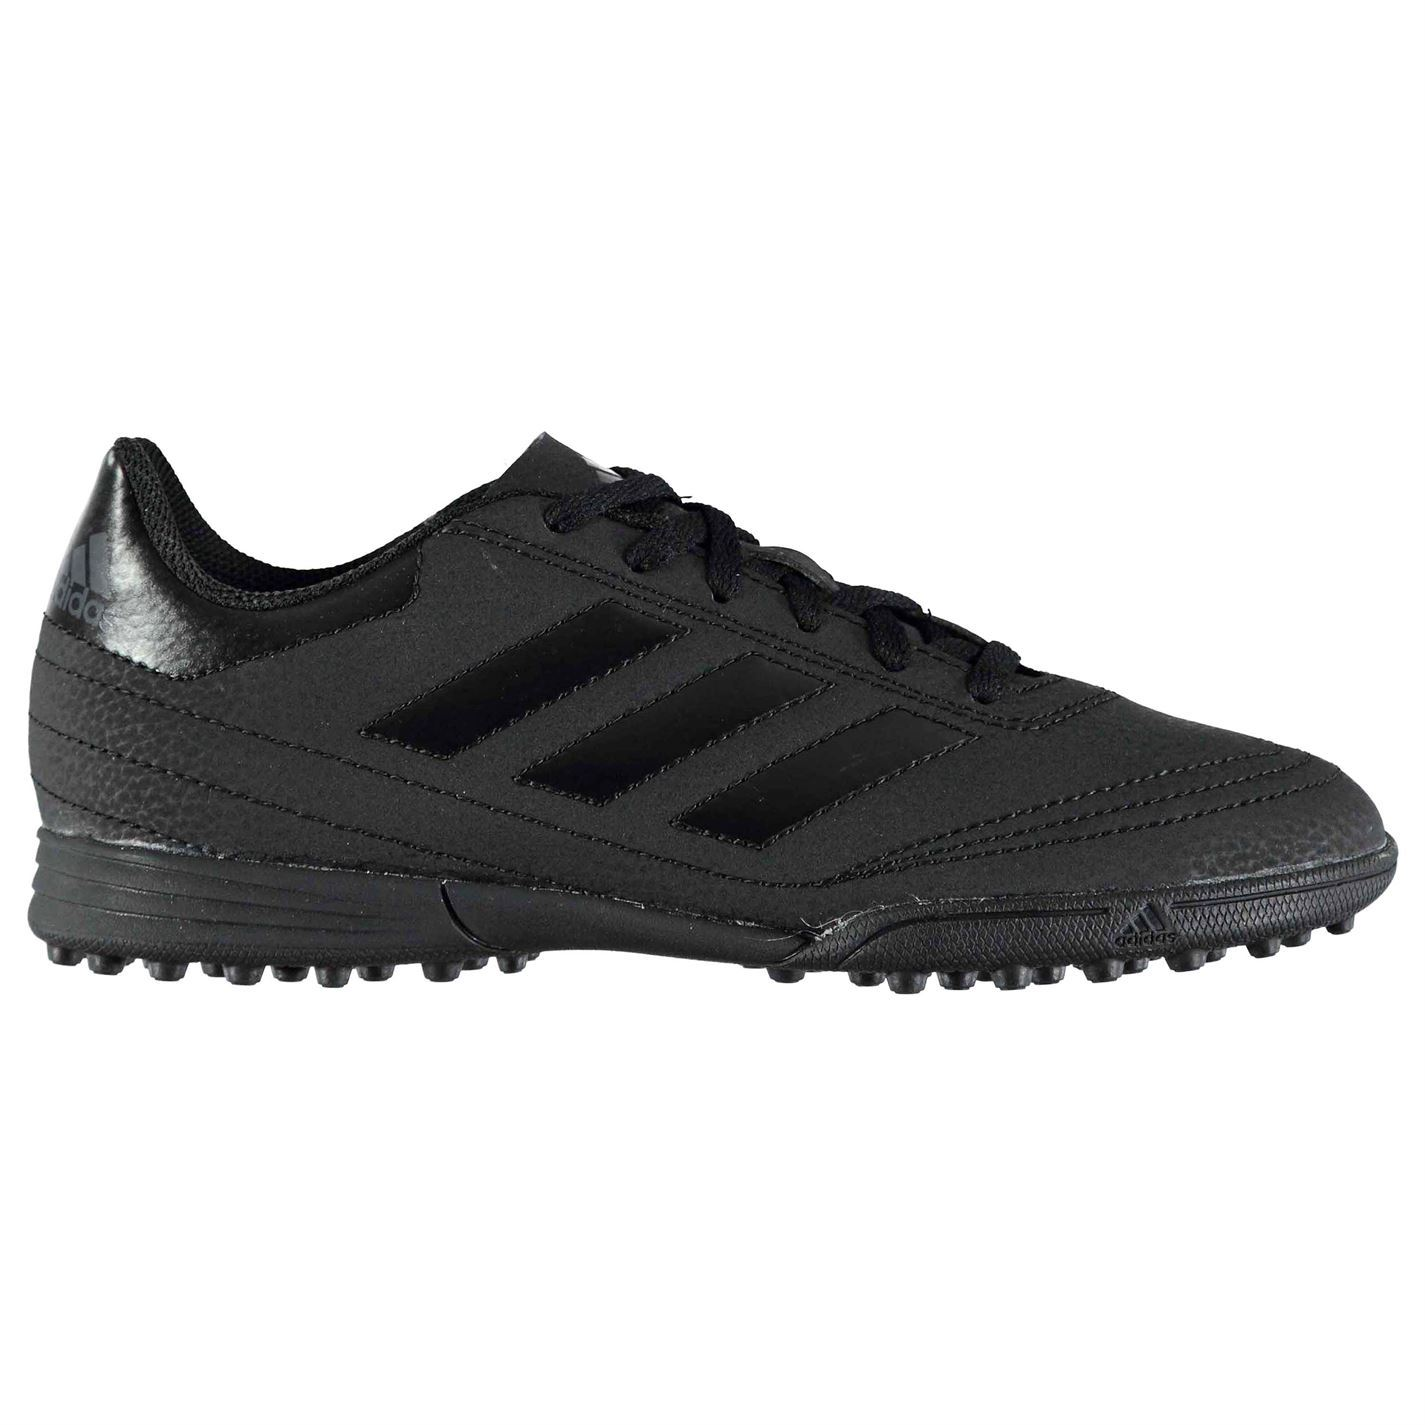 Adidas-Goletto-Astro-Turf-Football-Baskets-Juniors-Football-Baskets-Chaussures miniature 5